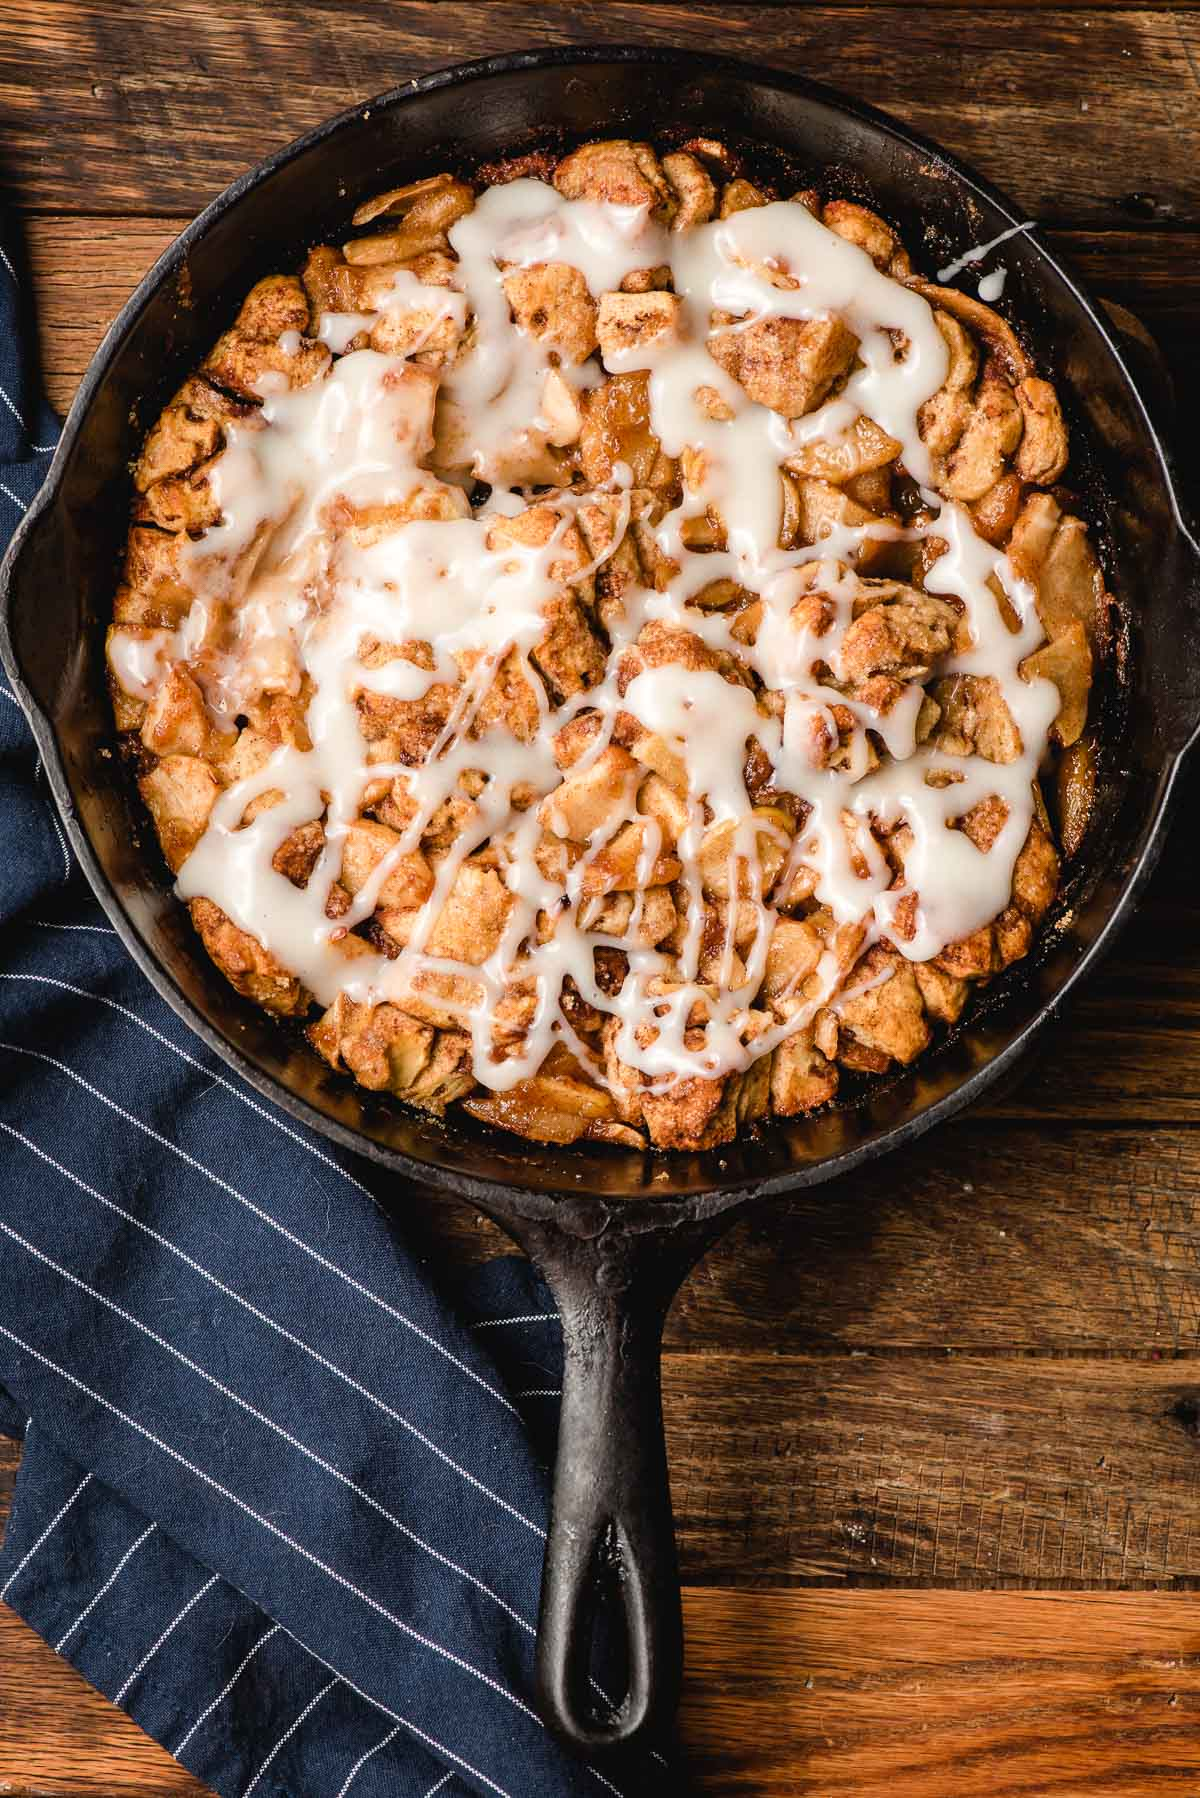 Cast iron skillet filled with apple cinnamon roll bake and covered with cream cheese frosting.